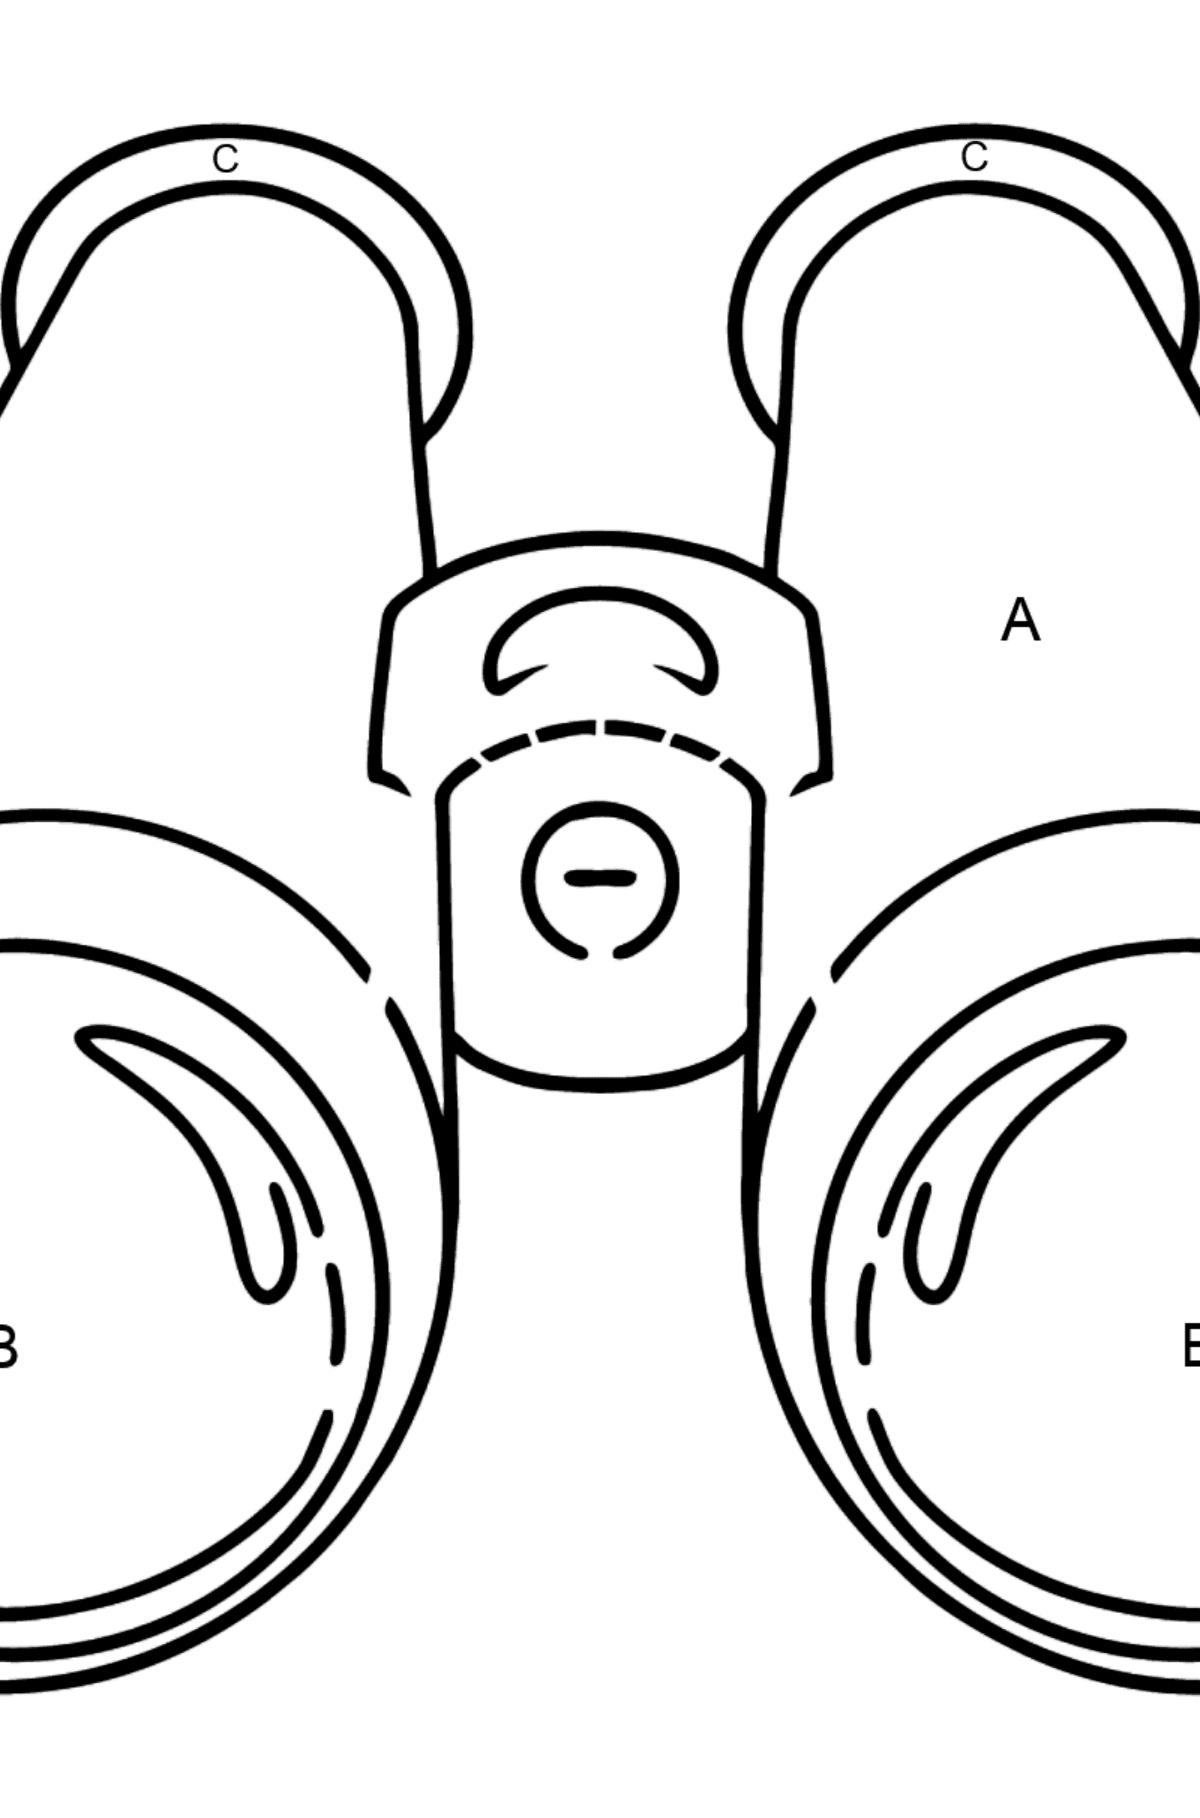 Binoculars coloring page - Coloring by Letters for Kids